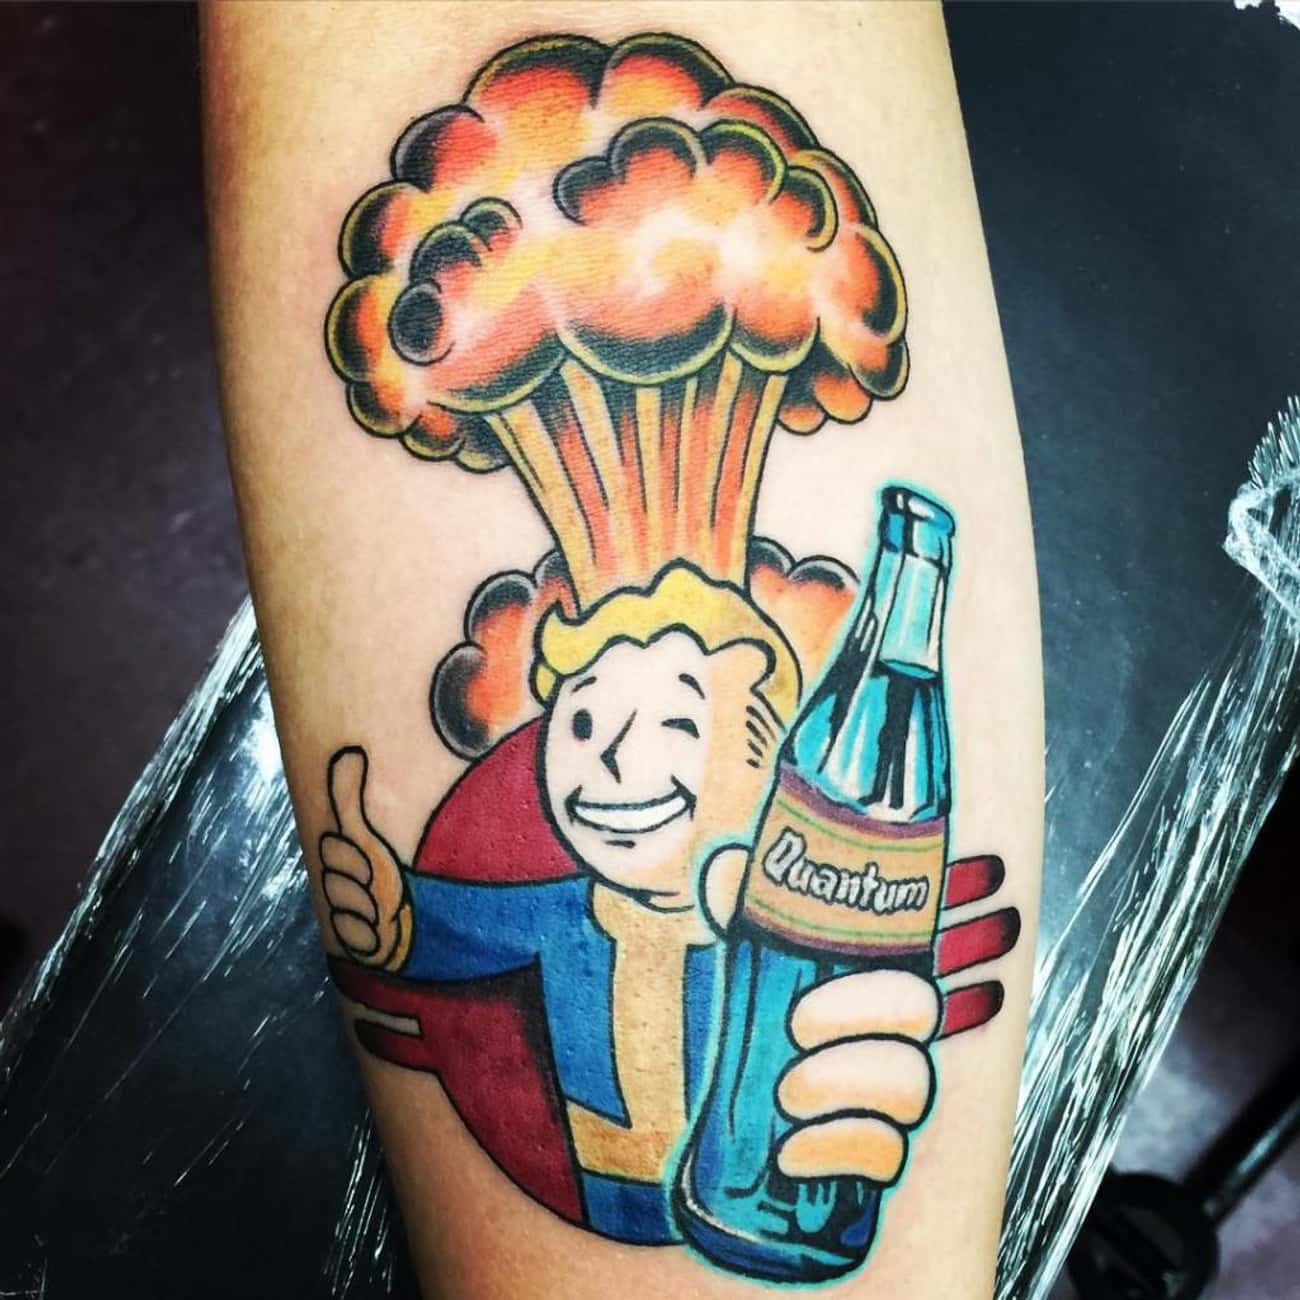 Vault Boy Enjoying a Tasty Bev is listed (or ranked) 1 on the list Tattoos Inspired by Fallout